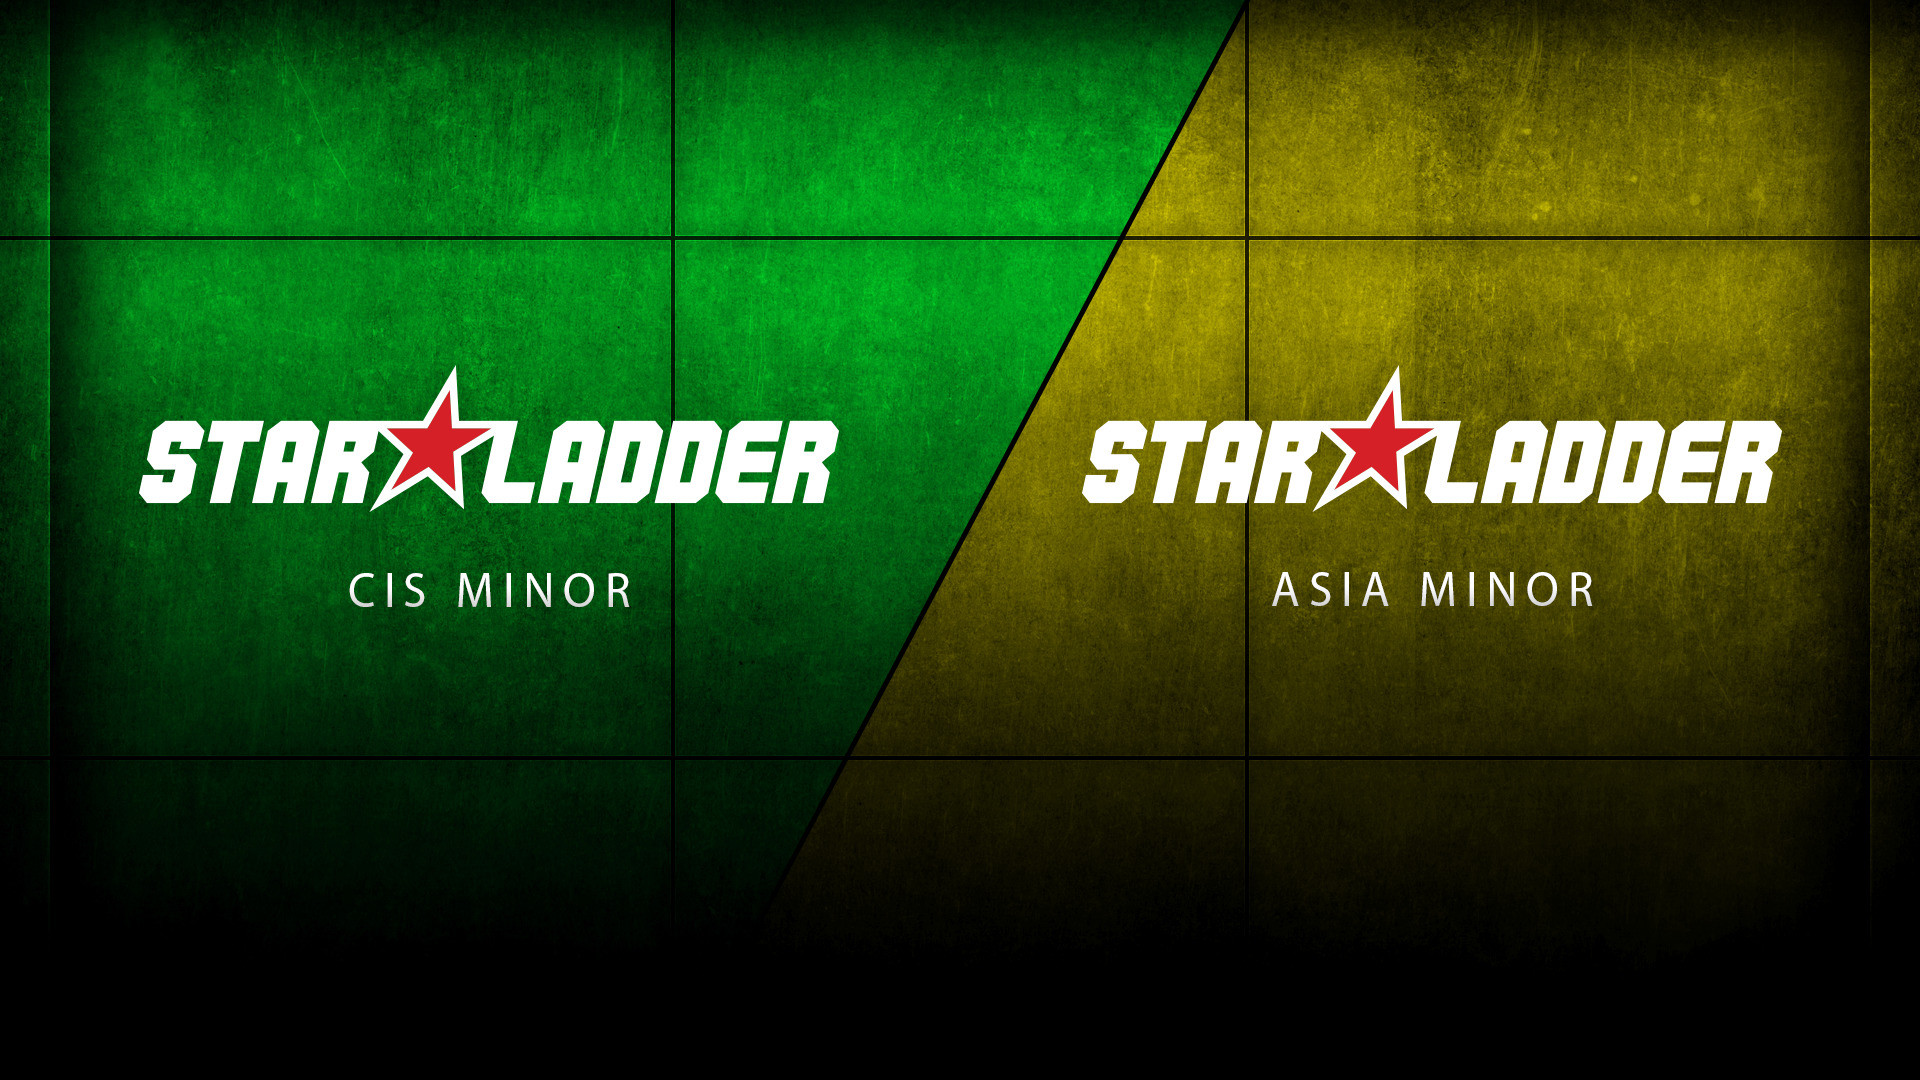 Starladder Minor CIS & Asia : Les groupes